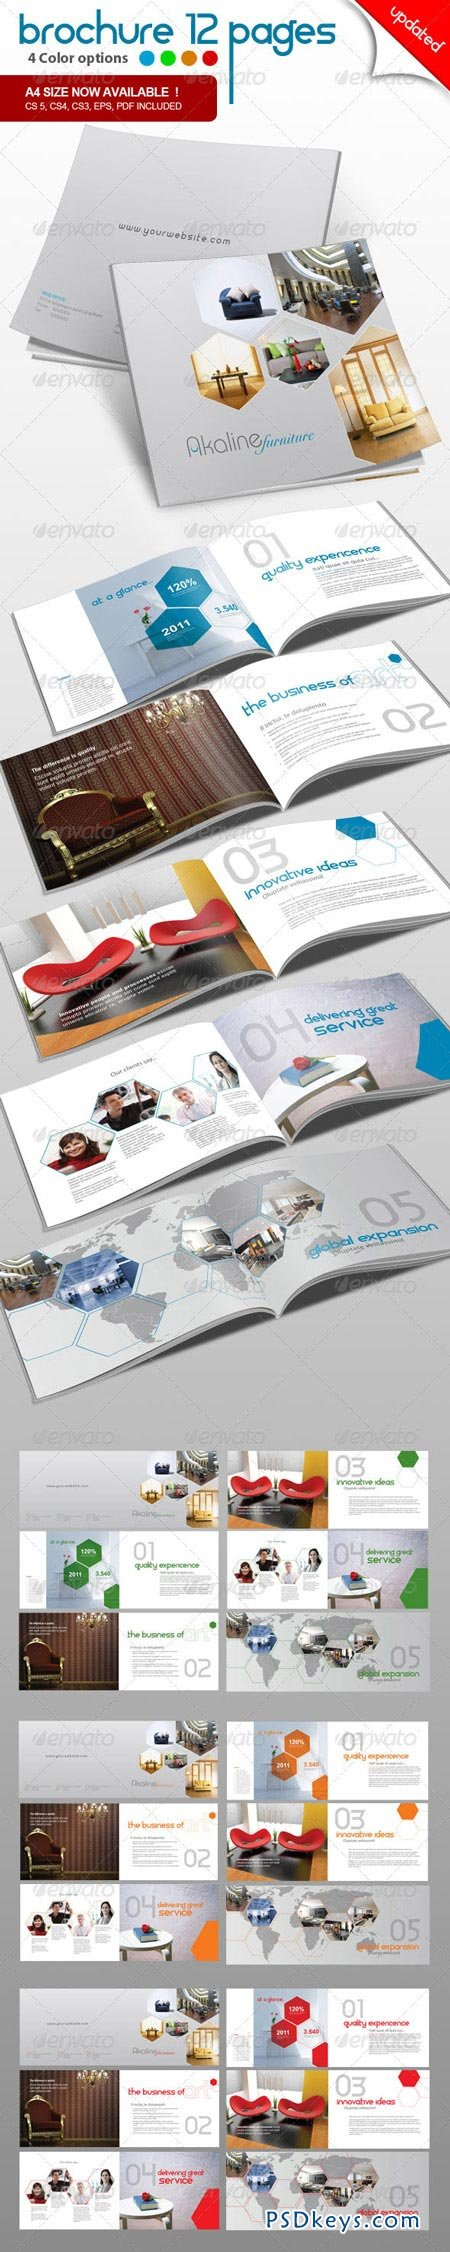 Corporate Brochure 12 pages 301830